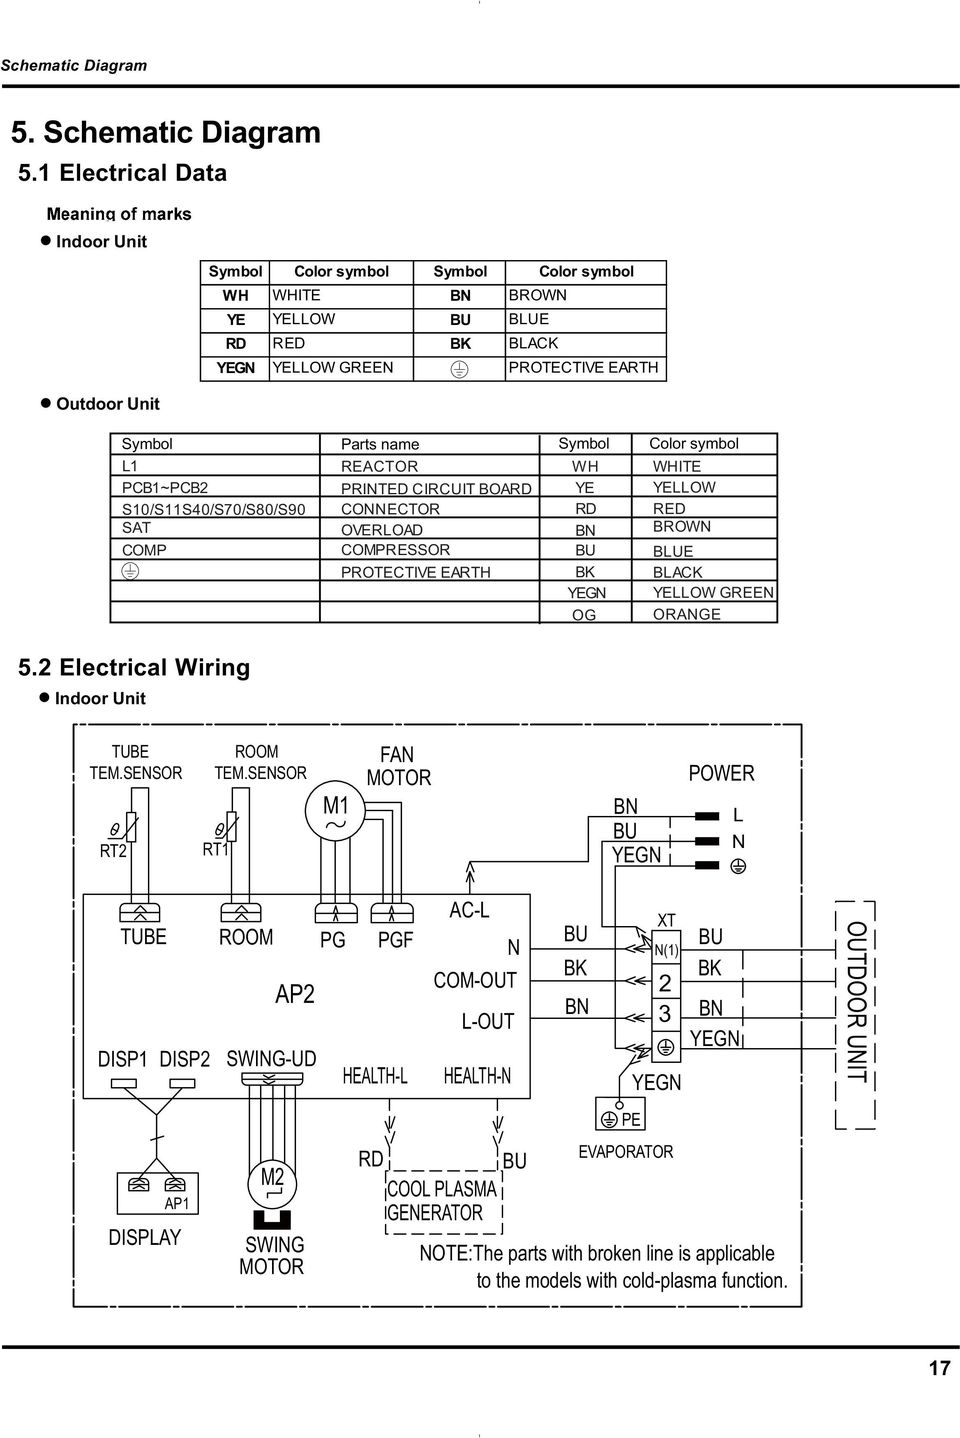 Service Manual Model Gree Electric Appliancesincof Zhuhai Pdf 88 S10 Air Conditioner Compressor Wiring Diagram Color Symbol L1 Reactor Wh White Pcb1pcb2 Printed Circuit Board Ye Yellow